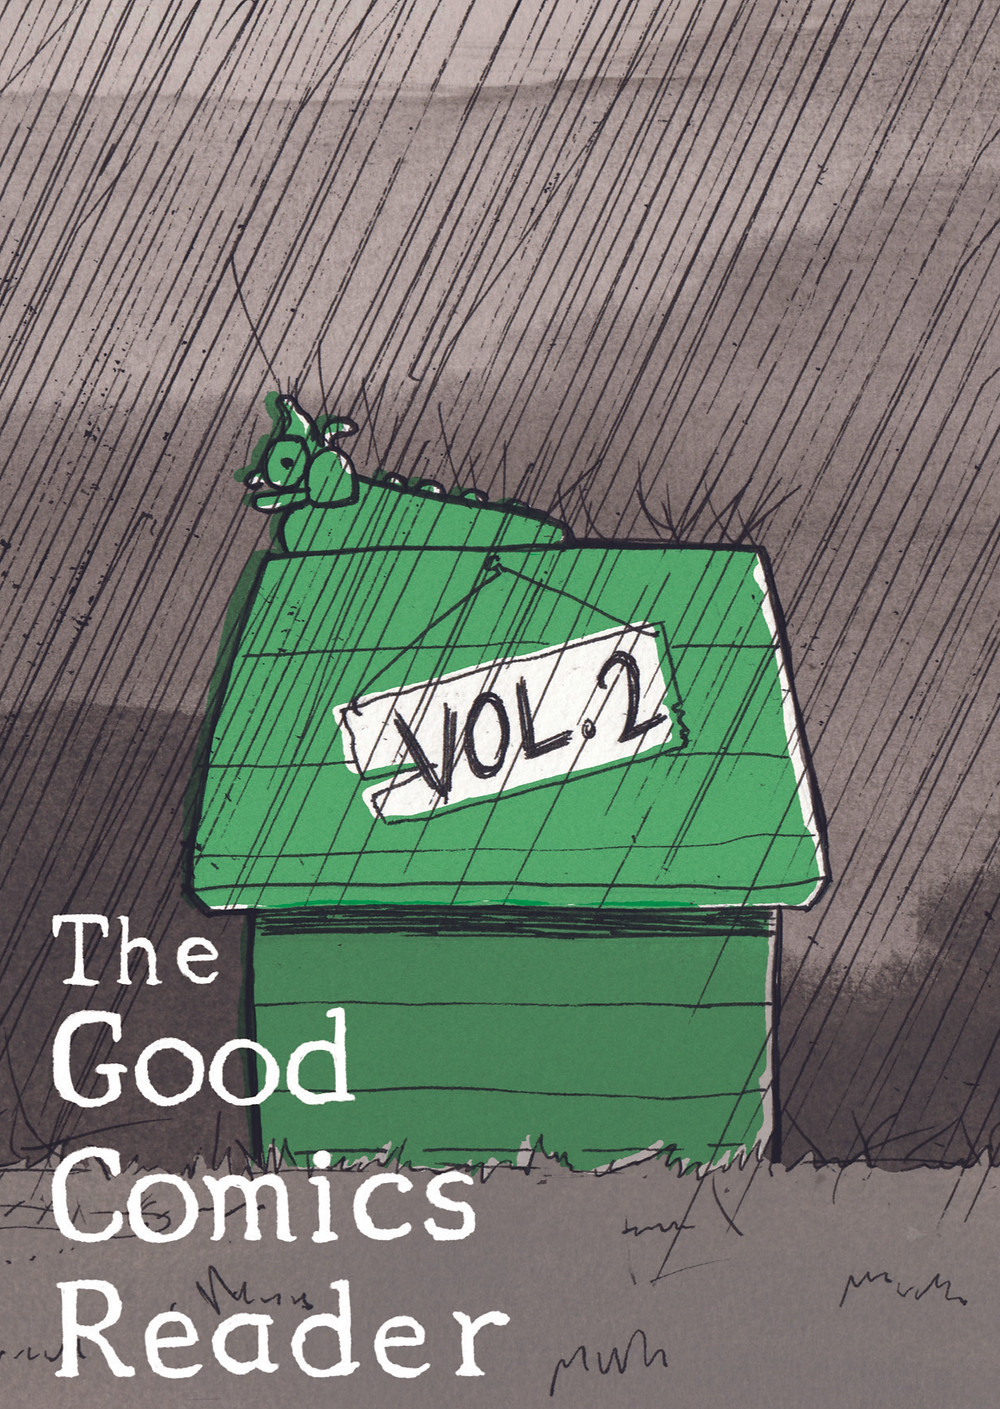 Cover artwork for the upcoming Good Comics Reader volume 2